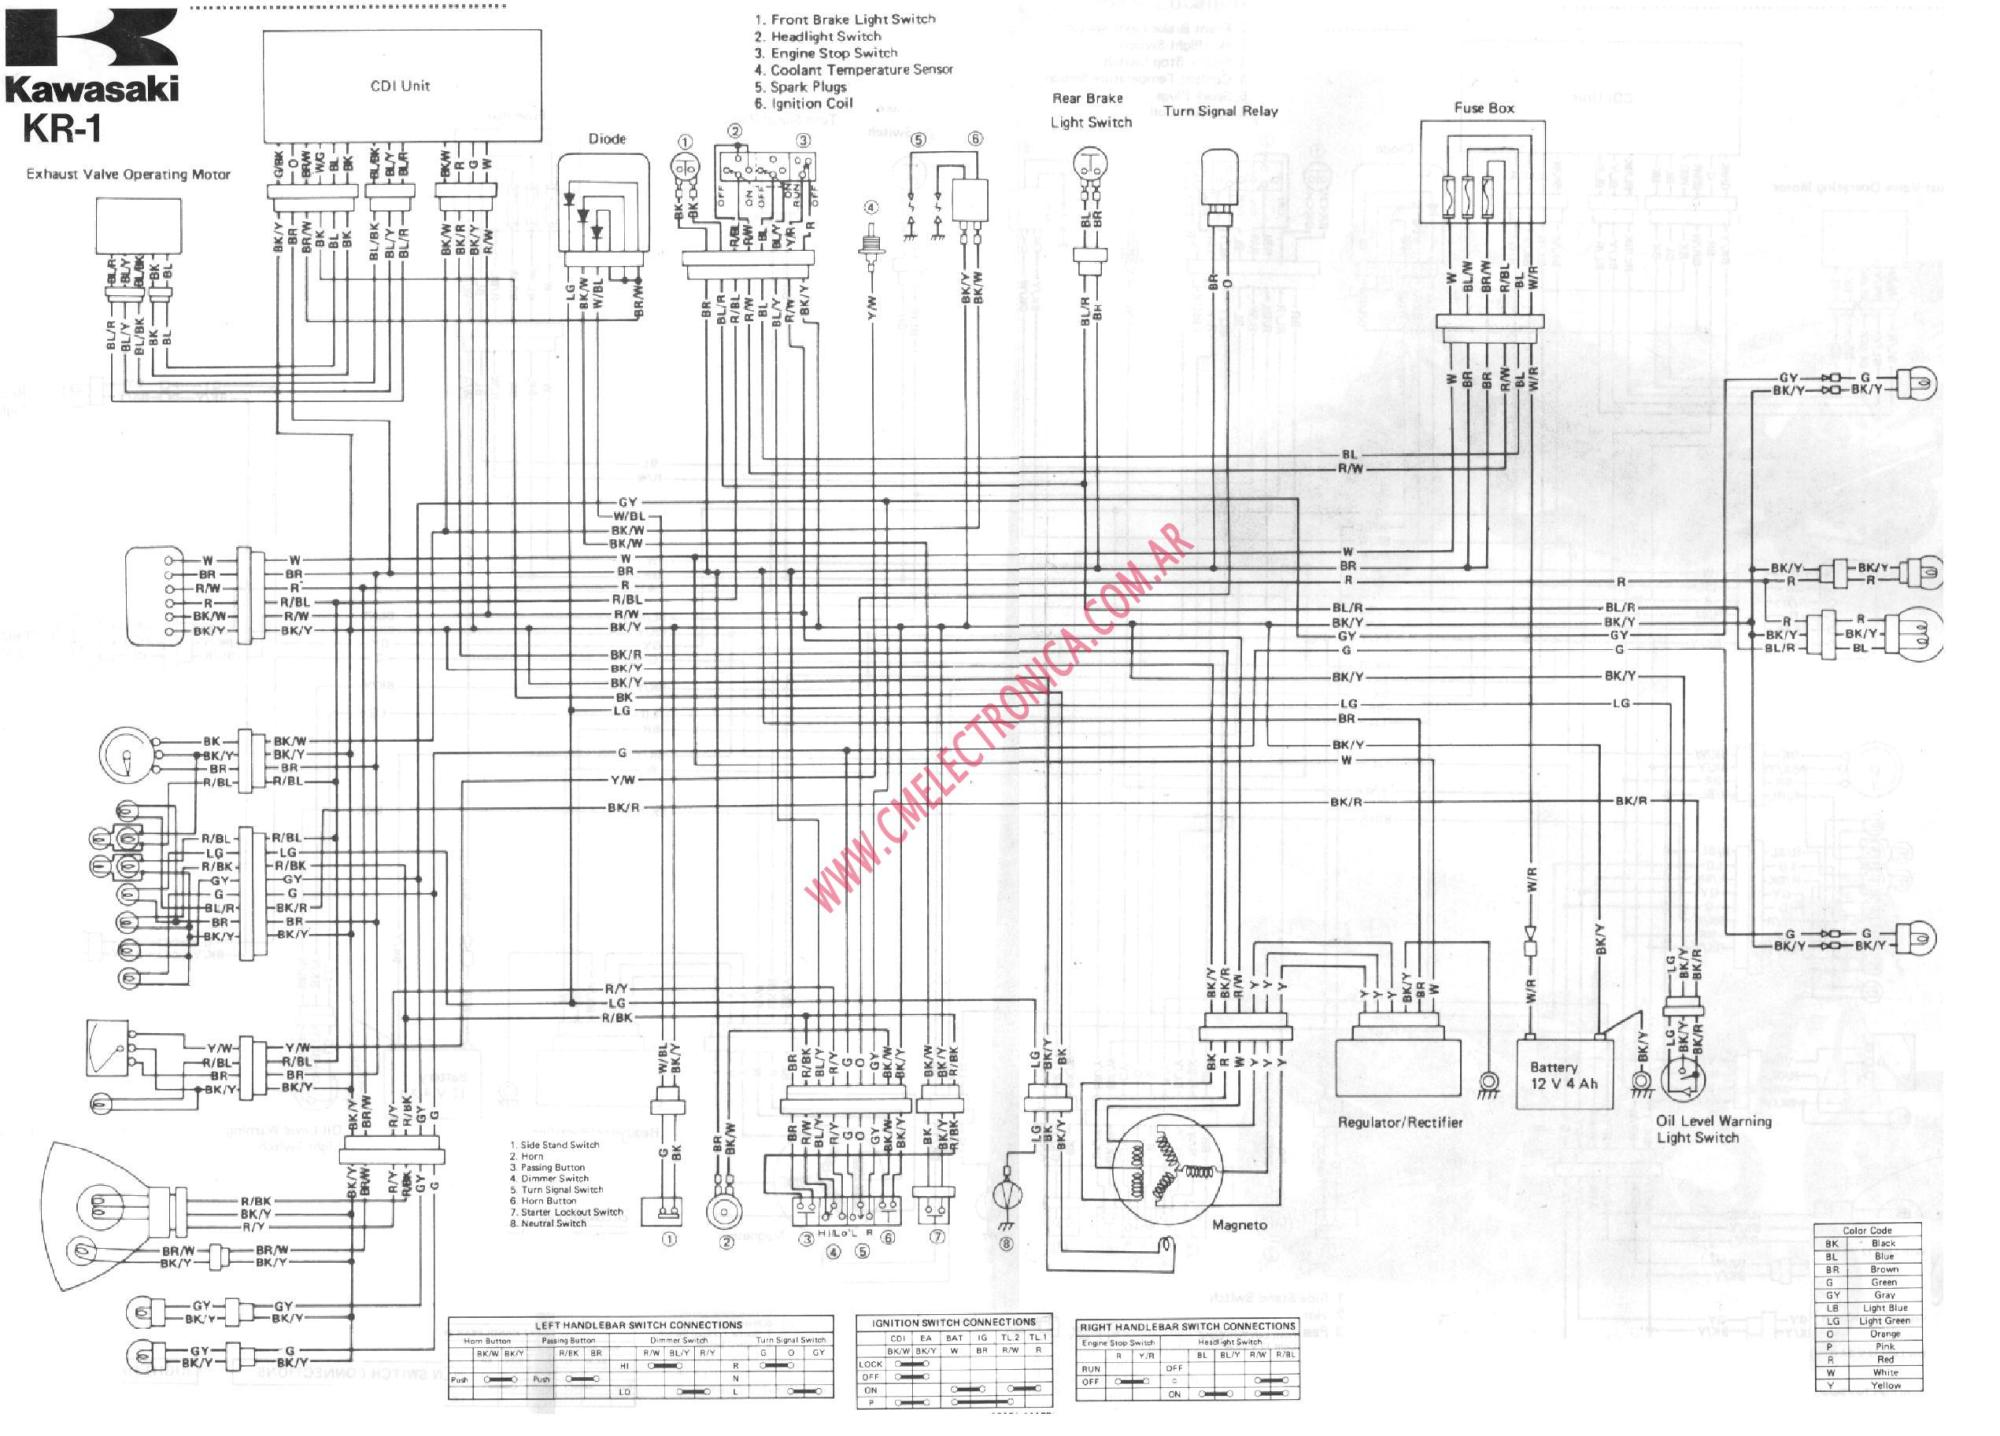 hight resolution of wiring diagram 1986 kawasaki zx600r wiring diagram used 1995 kawasaki bayou 300 wiring diagram kawasaki bayou 300 wiring